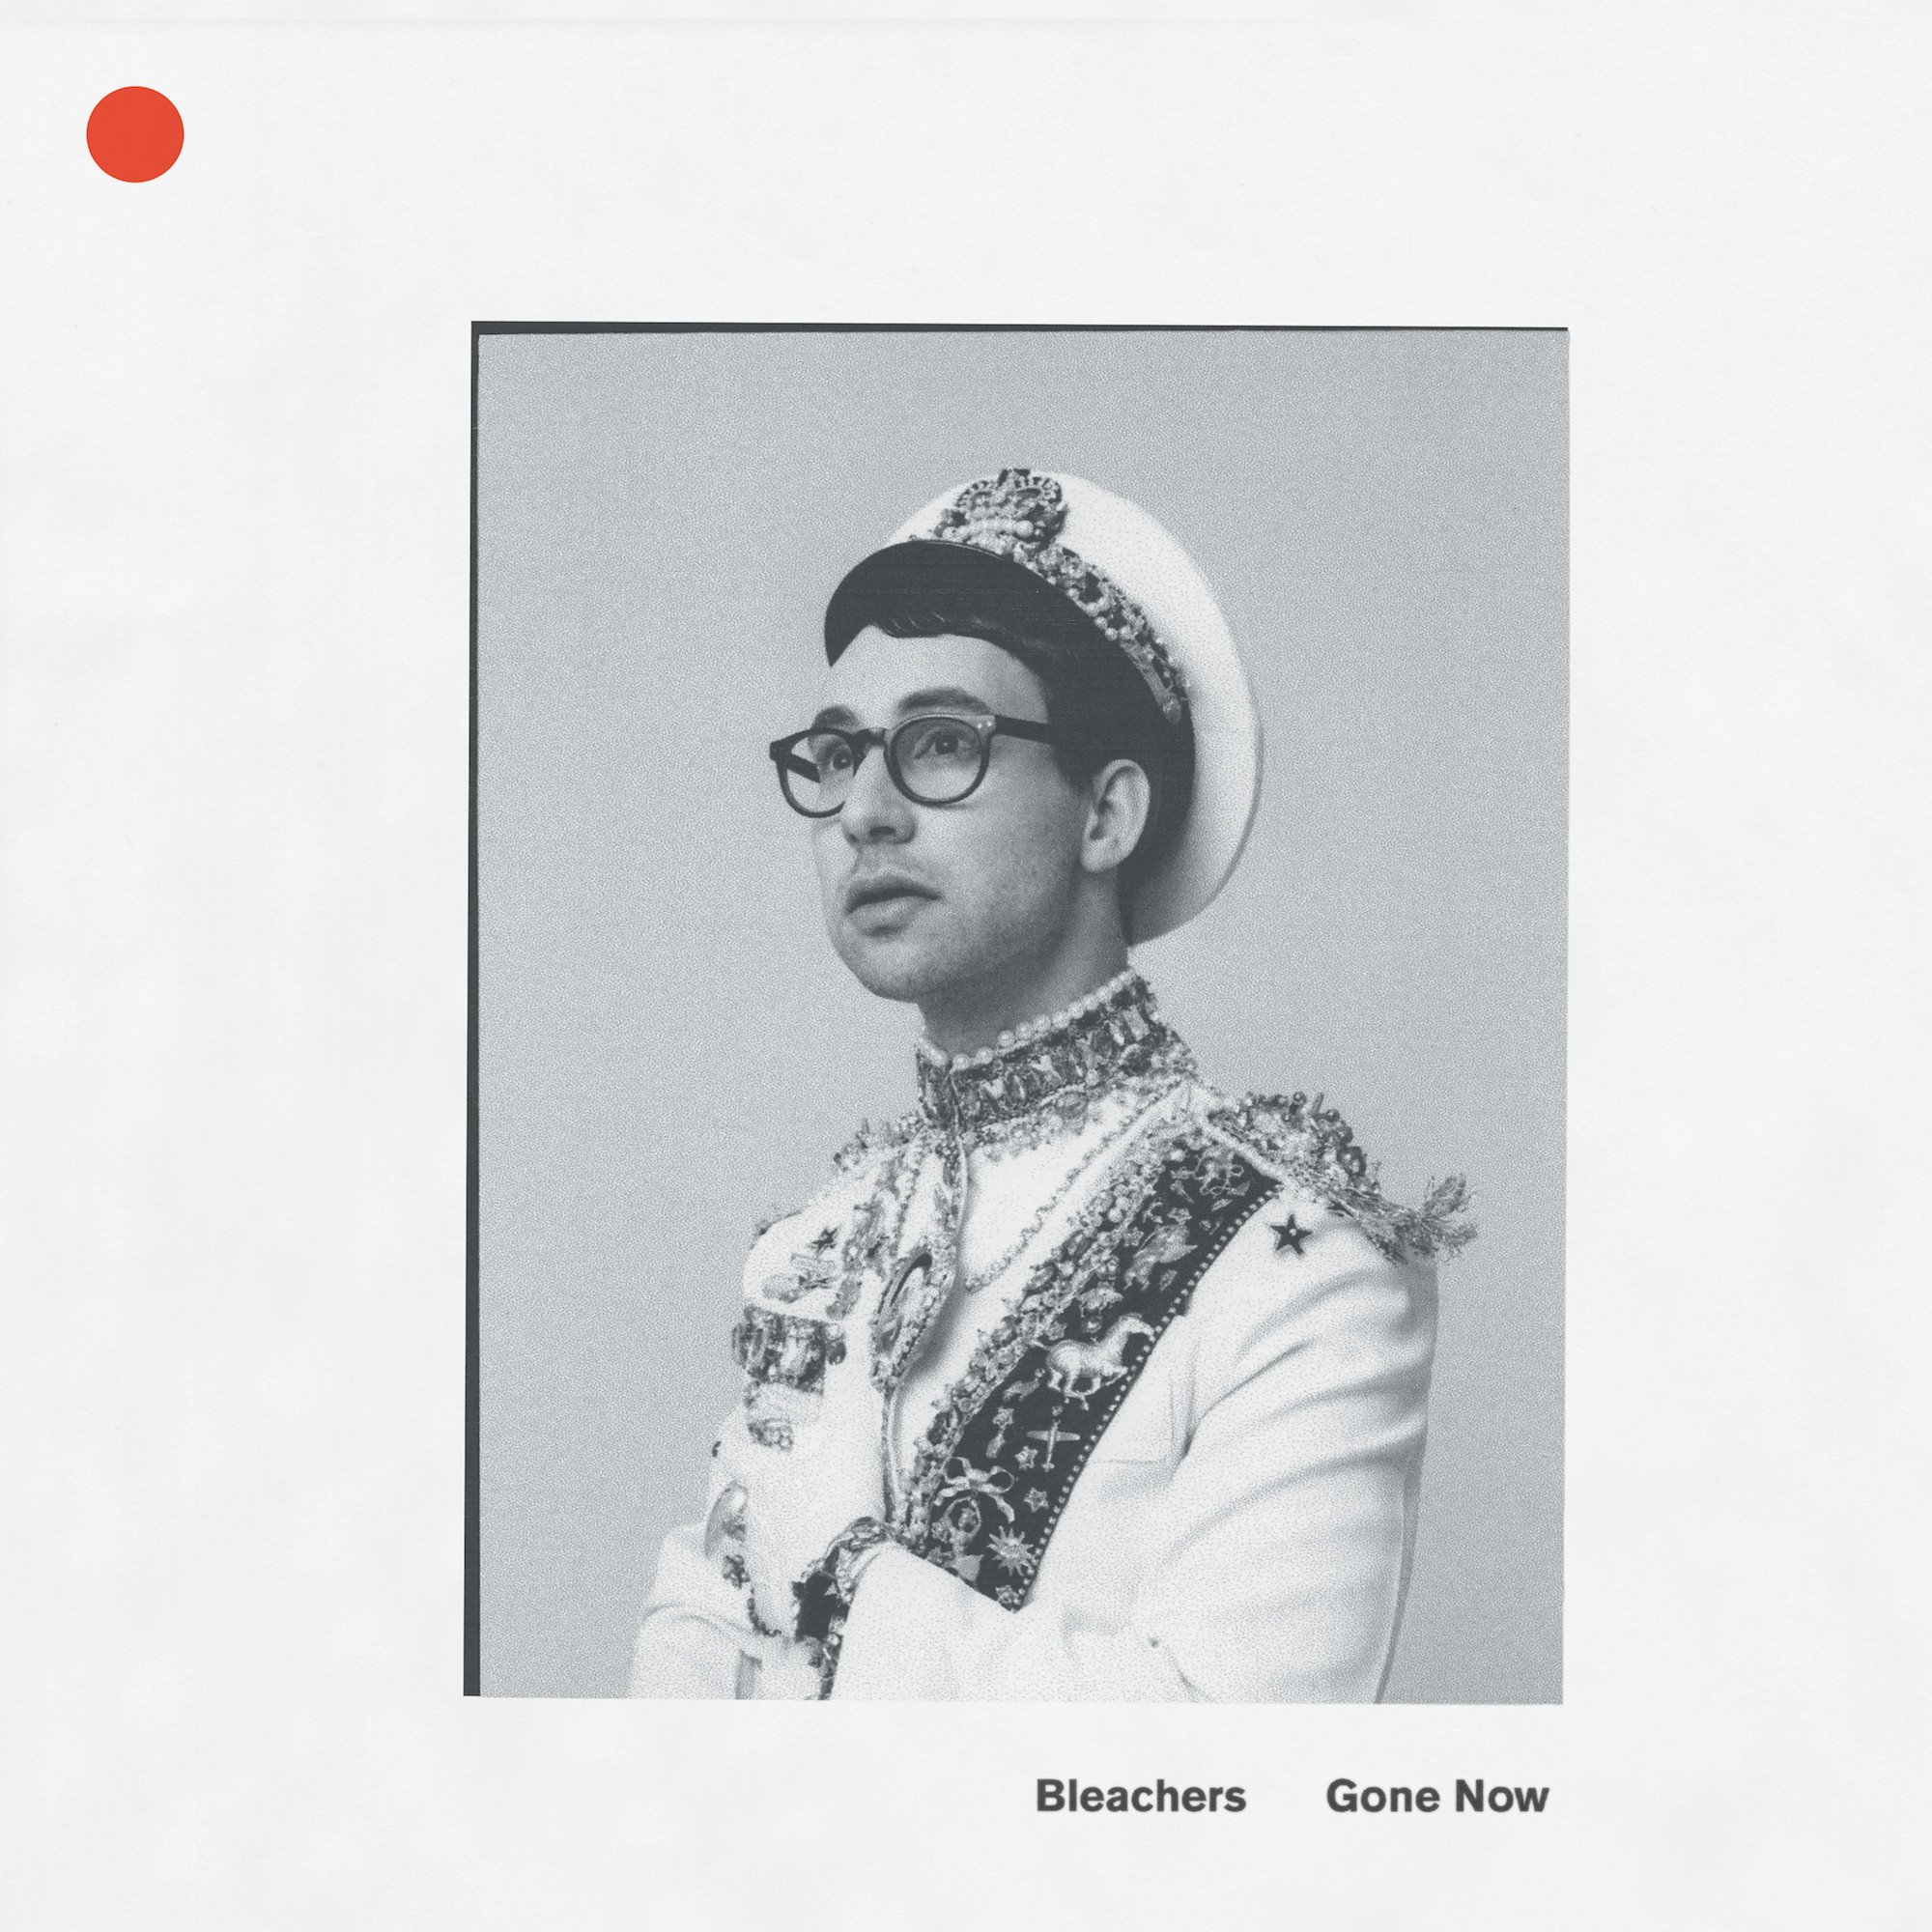 'Gone Now' by Bleachers Our review